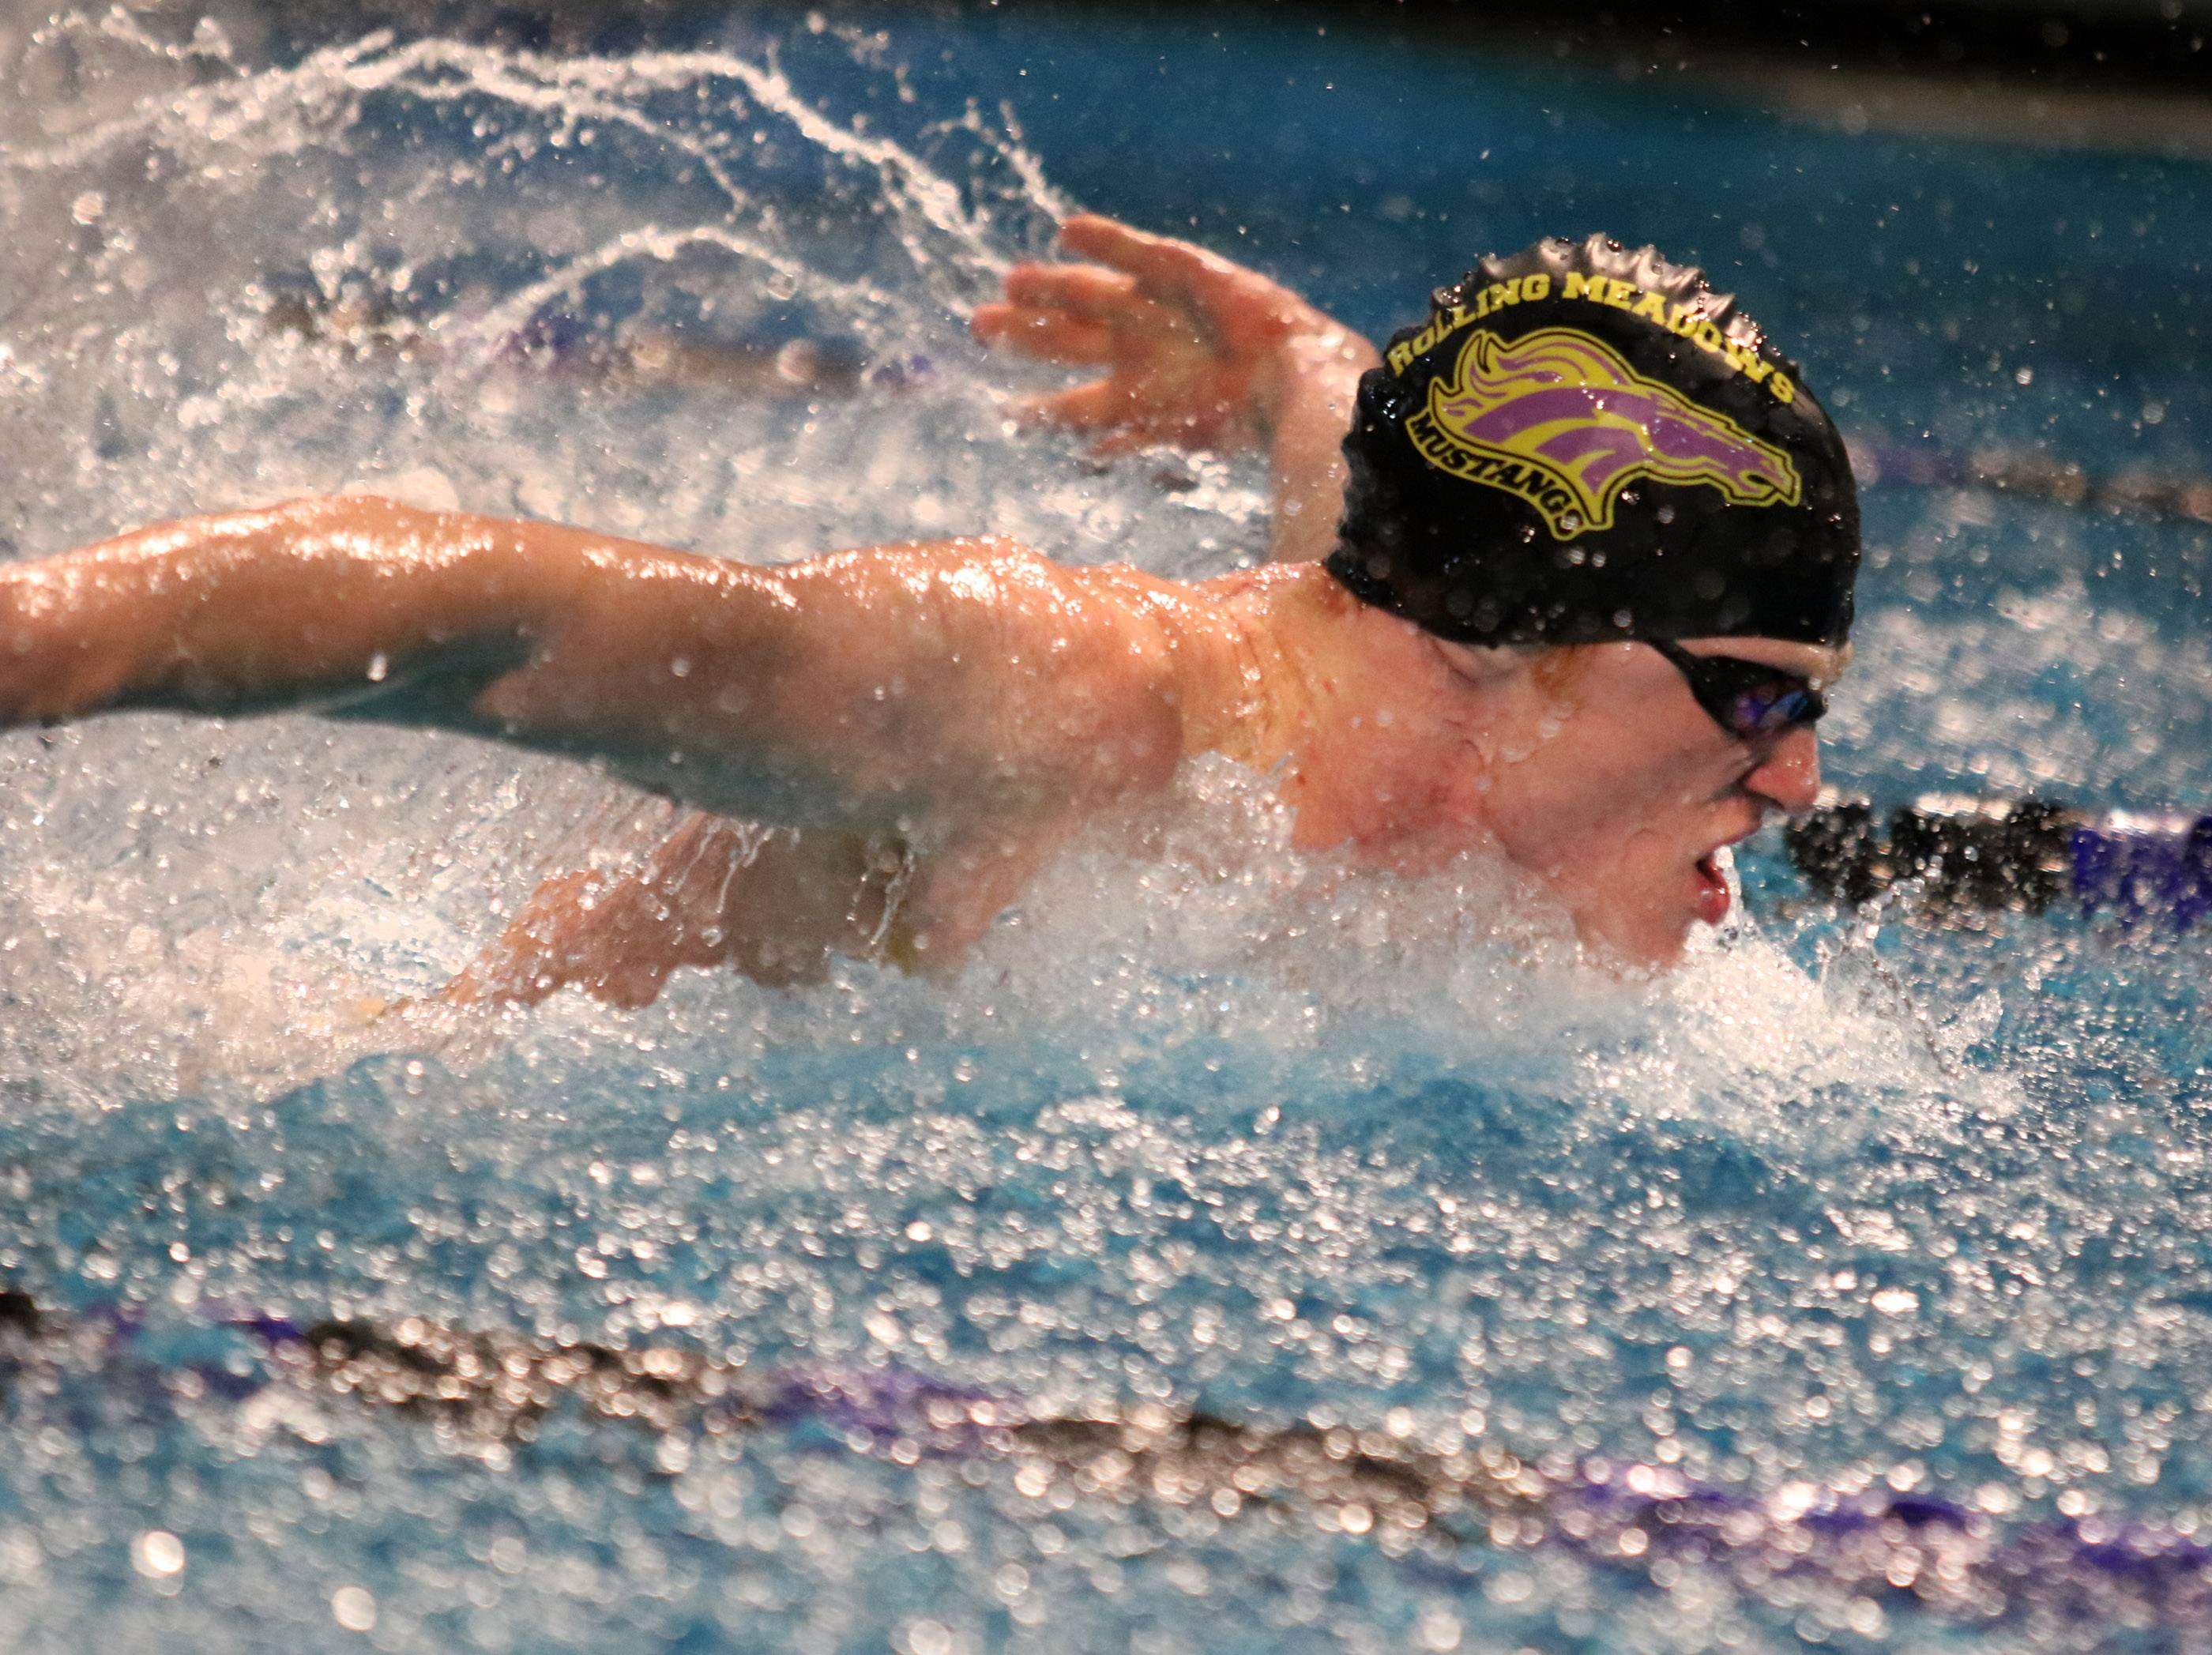 Rolling Meadows' Jake Barson wins the 200-yard IM with a time of 1:49.15 at a boys swim meet on Friday in Wheeling.